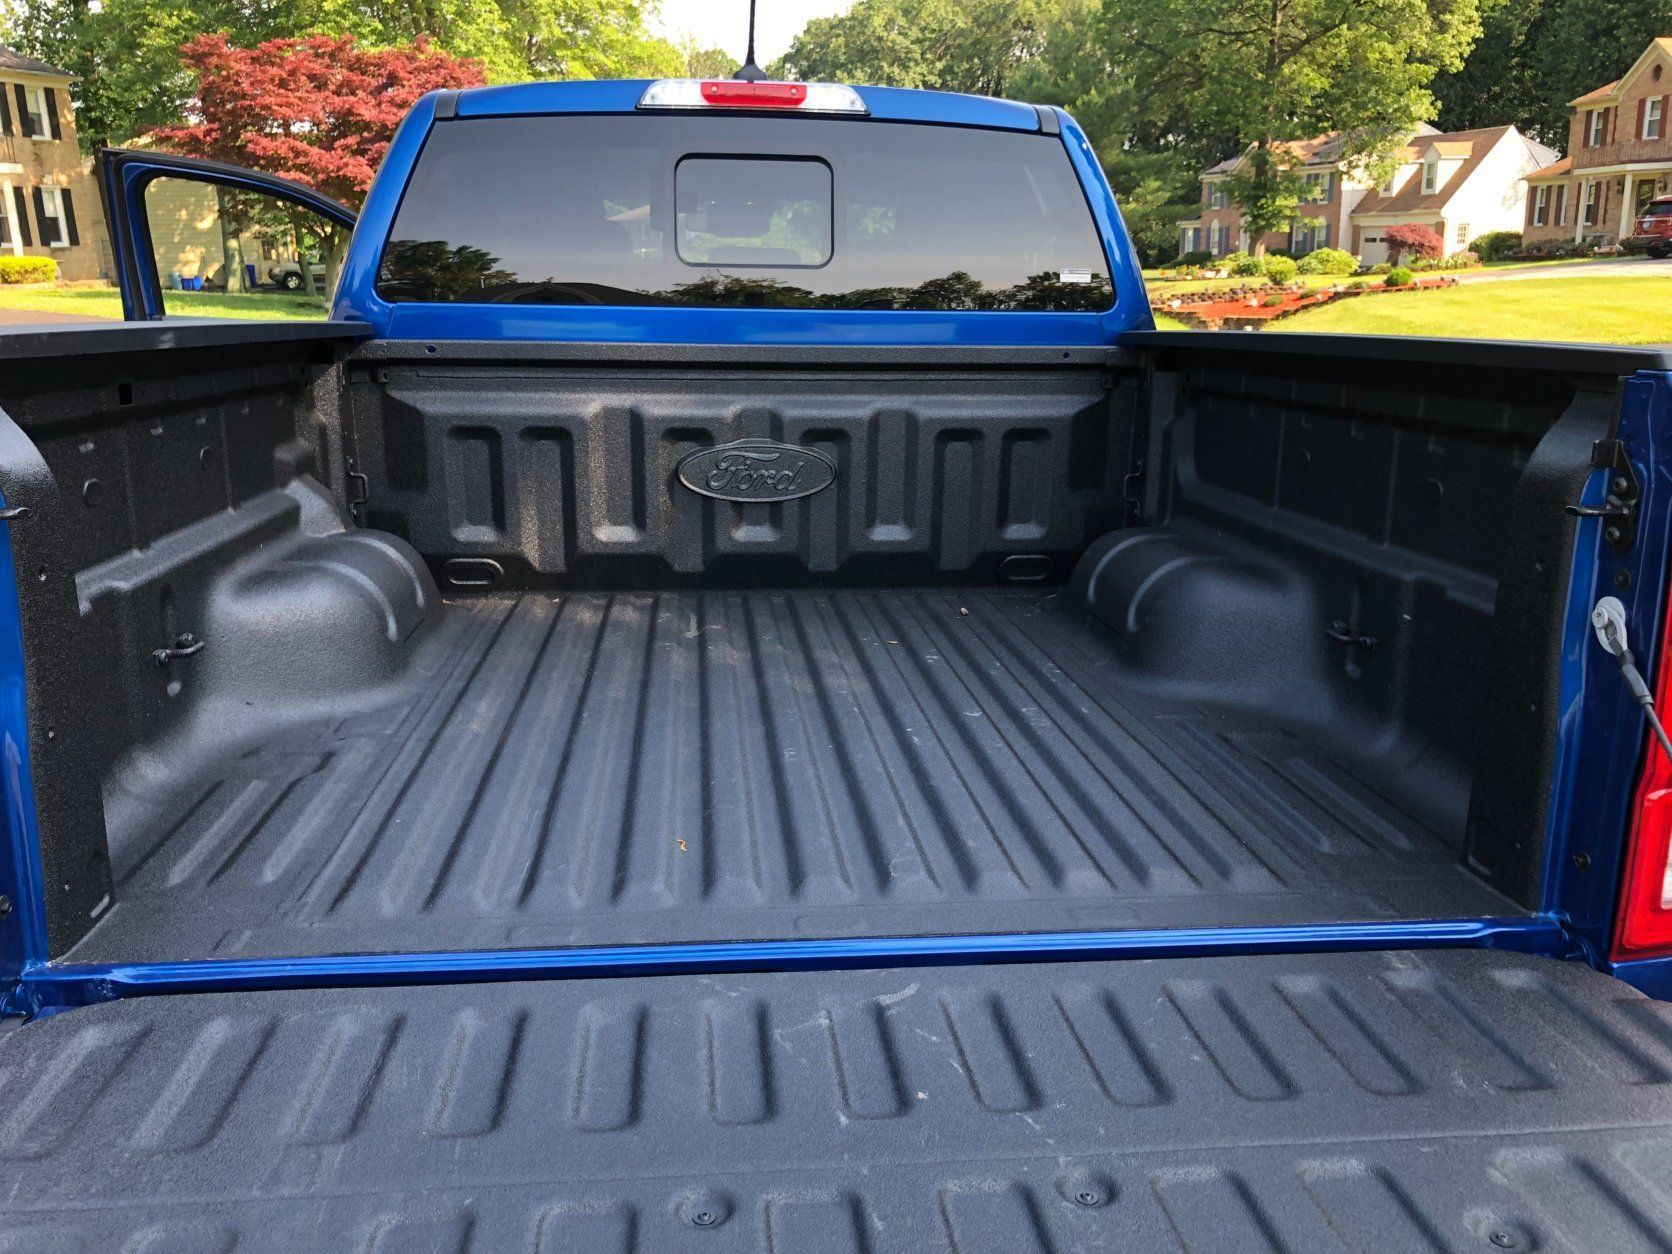 <p>Out back, the optional spray bed liner helps protect the bed and the trailer tow package adds the hitch and hookups for $500 each.</p>